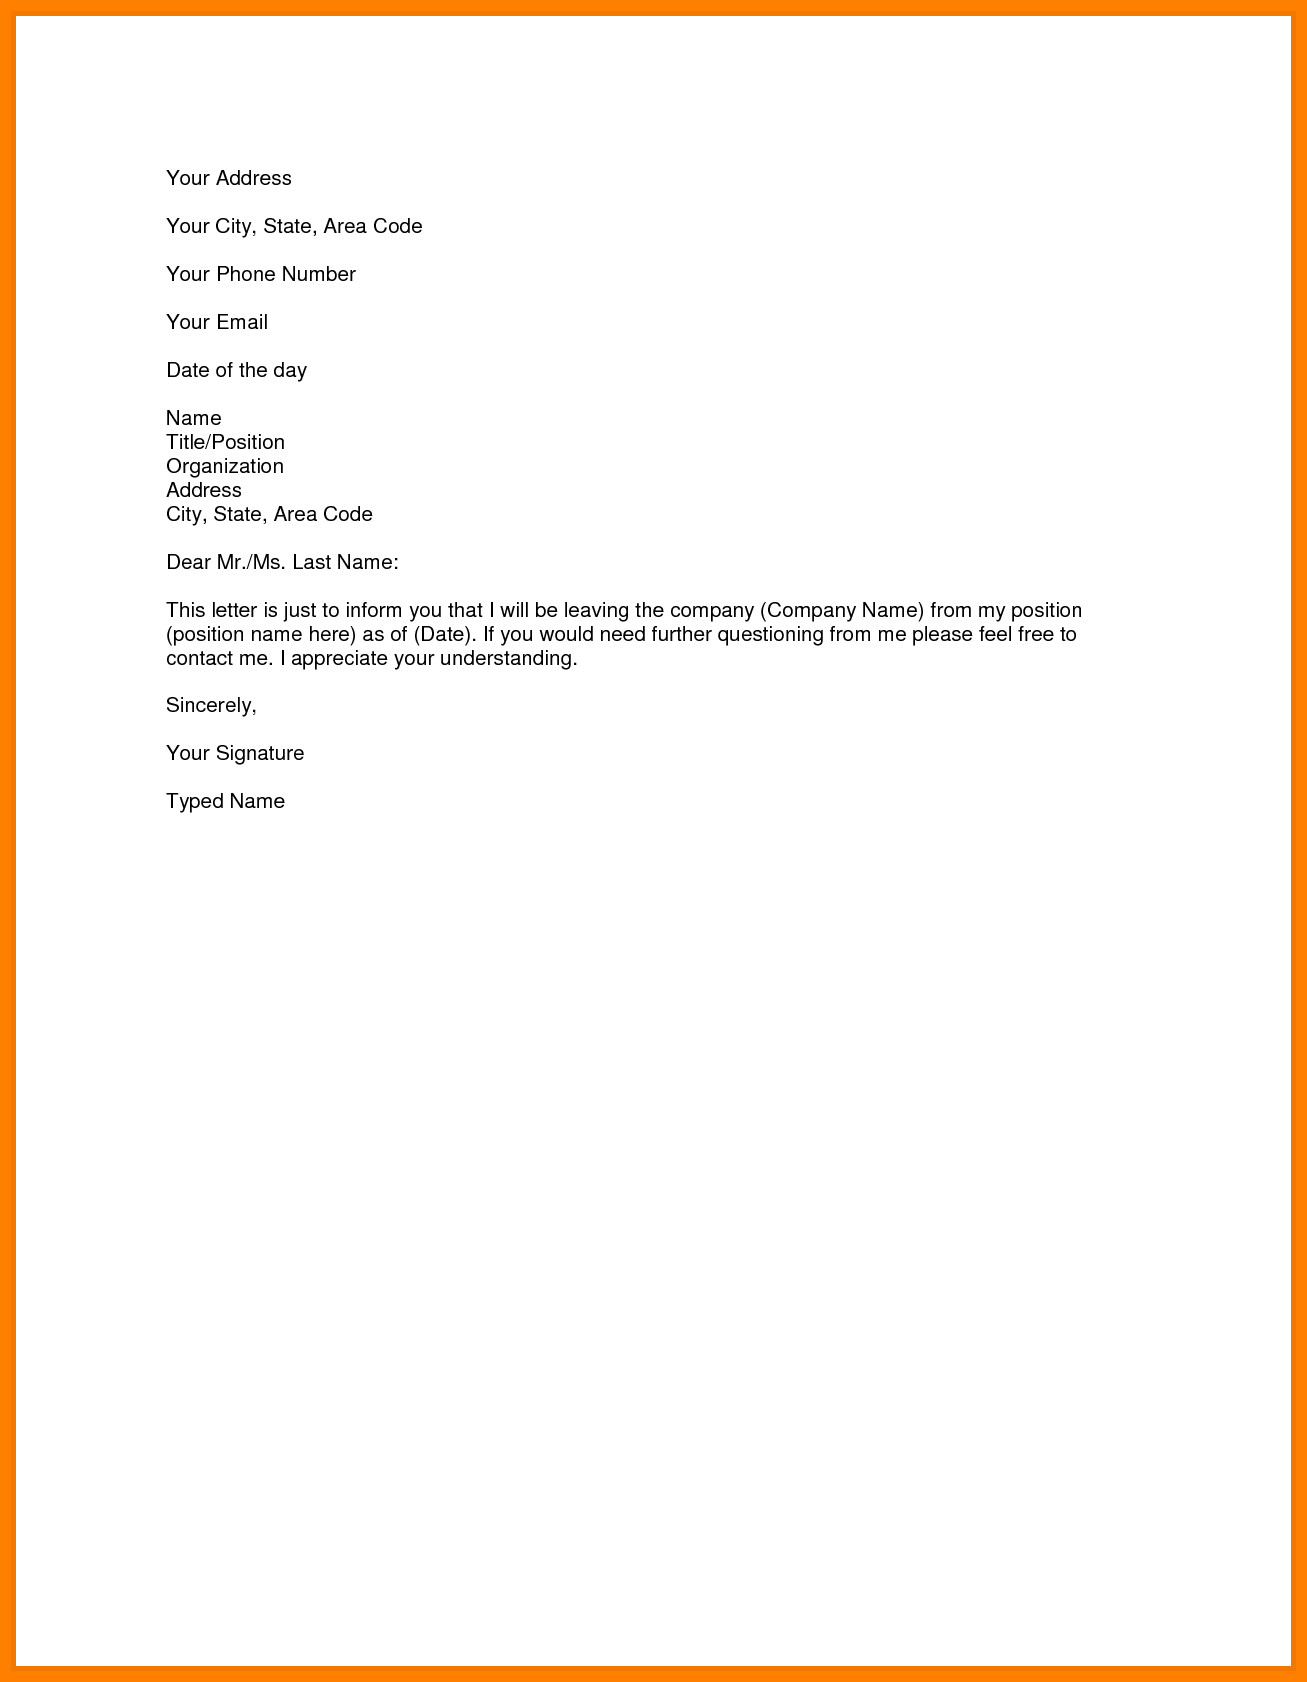 Resignation Letter Personal Reason 6 Simple Resignation Letter Sample for Personal Reasons